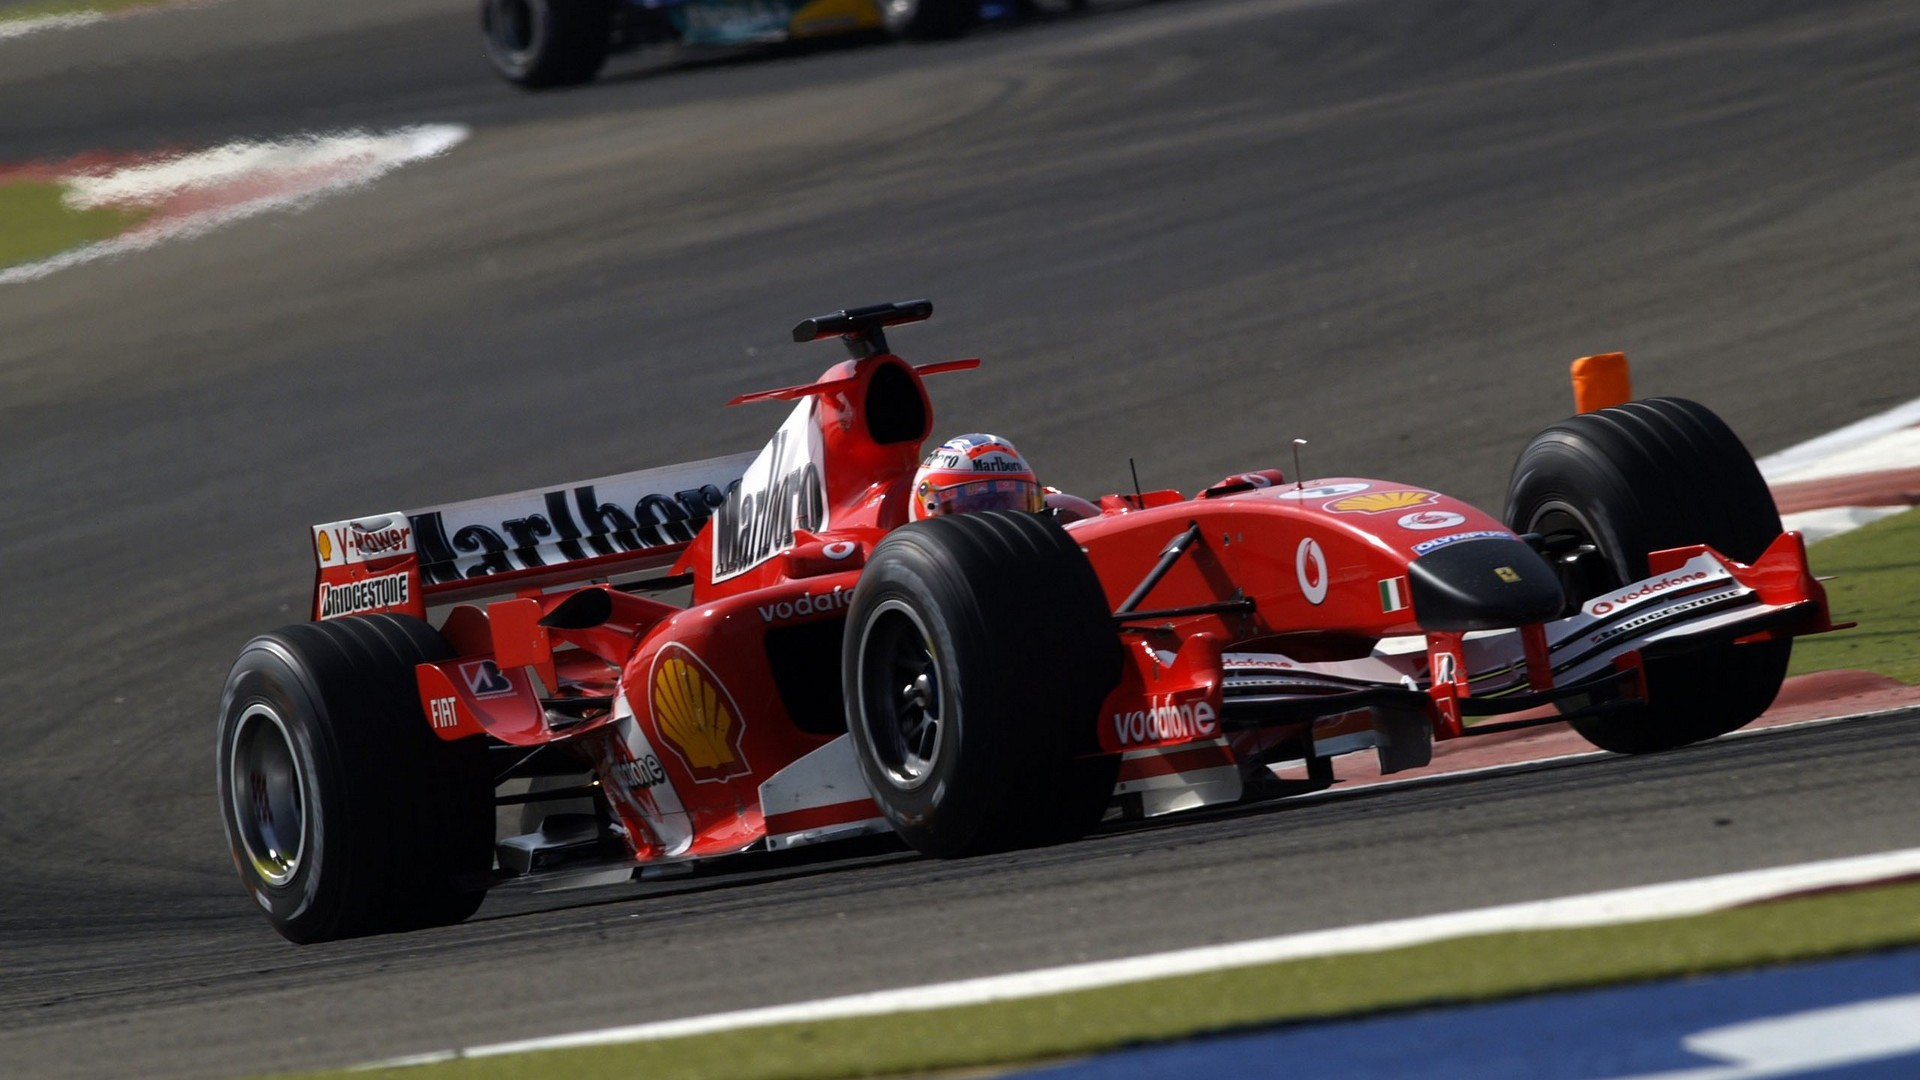 Hd wallpapers 2005 formula 1 grand prix of bahrain f1 for Booking formule 1